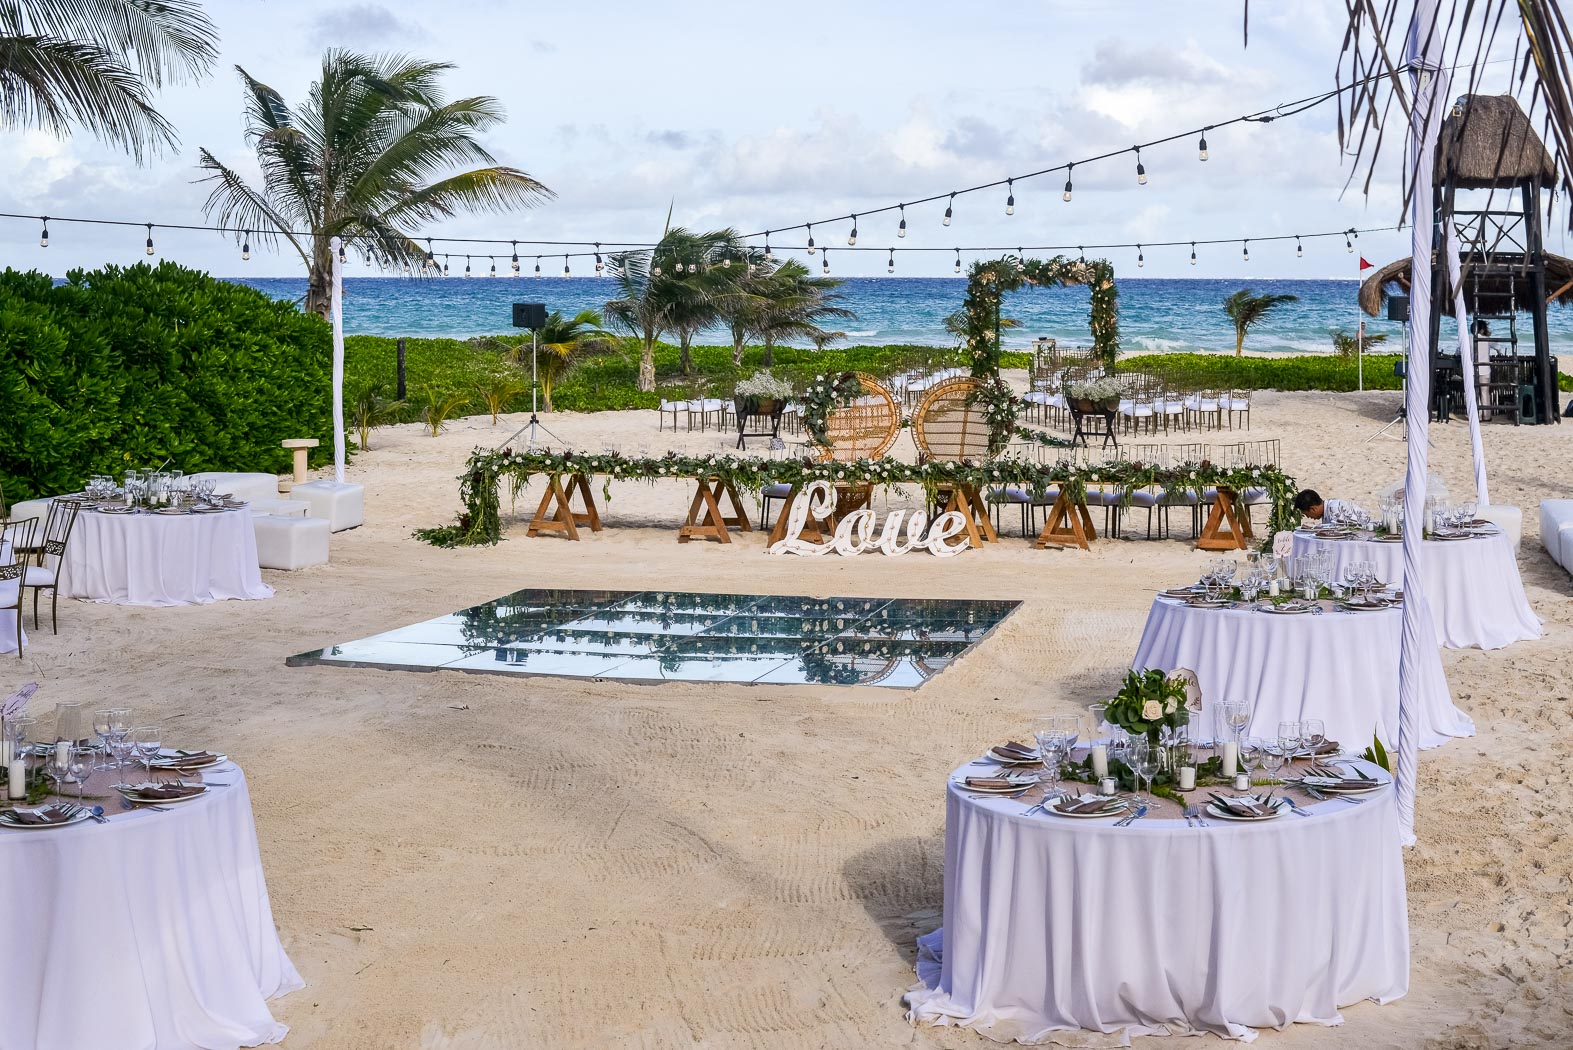 Overview of set up for wedding outside on the beach